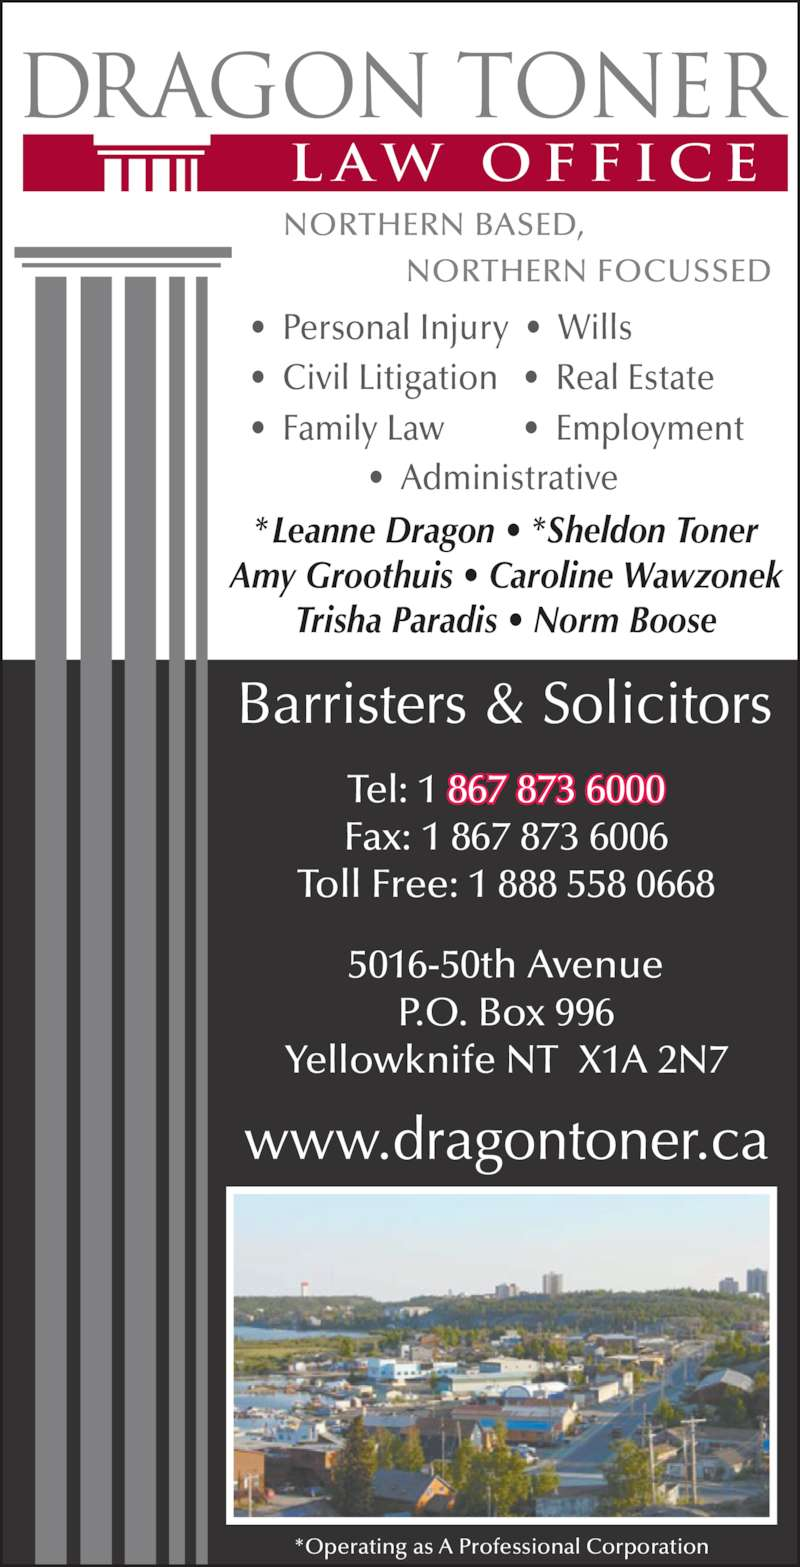 Dragon Toner Law Office (8678736000) - Display Ad - ?  Personal Injury  ?  Wills   ?  Civil Litigation   ?  Real Estate   ?  Family Law         ?  Employment  *Leanne Dragon ? *Sheldon Toner Amy Groothuis ? Caroline Wawzonek Trisha Paradis ? Norm Boose 5016-50th Avenue P.O. Box 996 Yellowknife NT  X1A 2N7 *Operating as A Professional Corporation Tel: 1 867 873 6000 Fax: 1 867 873 6006 Toll Free: 1 888 558 0668 ?  Administrative